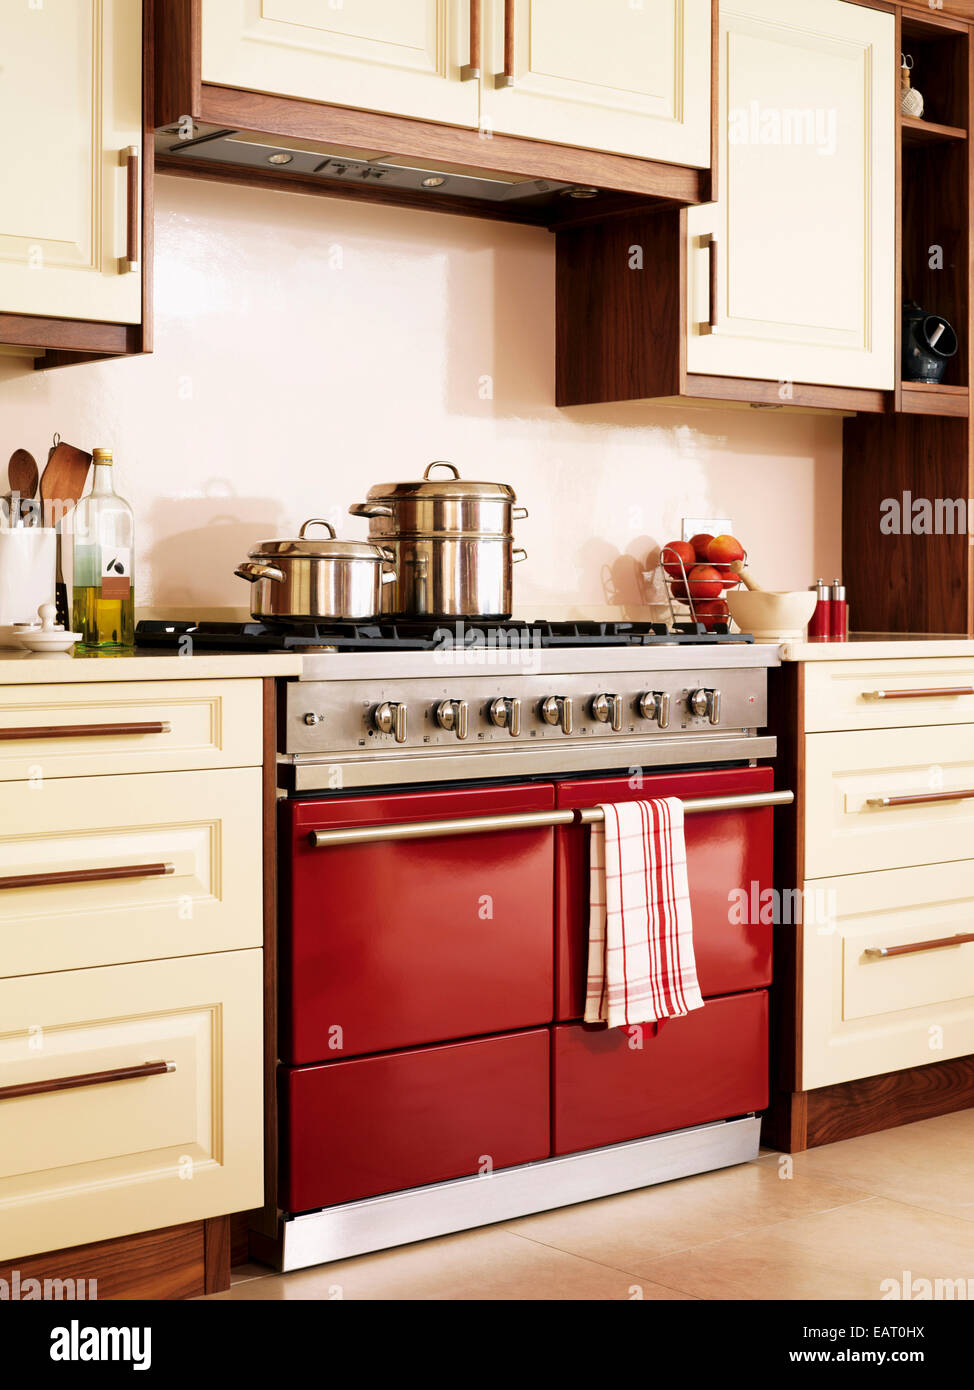 Contemporary Kitchen Units Red Range Oven In Contemporary Kitchen With Fitted Units Stock